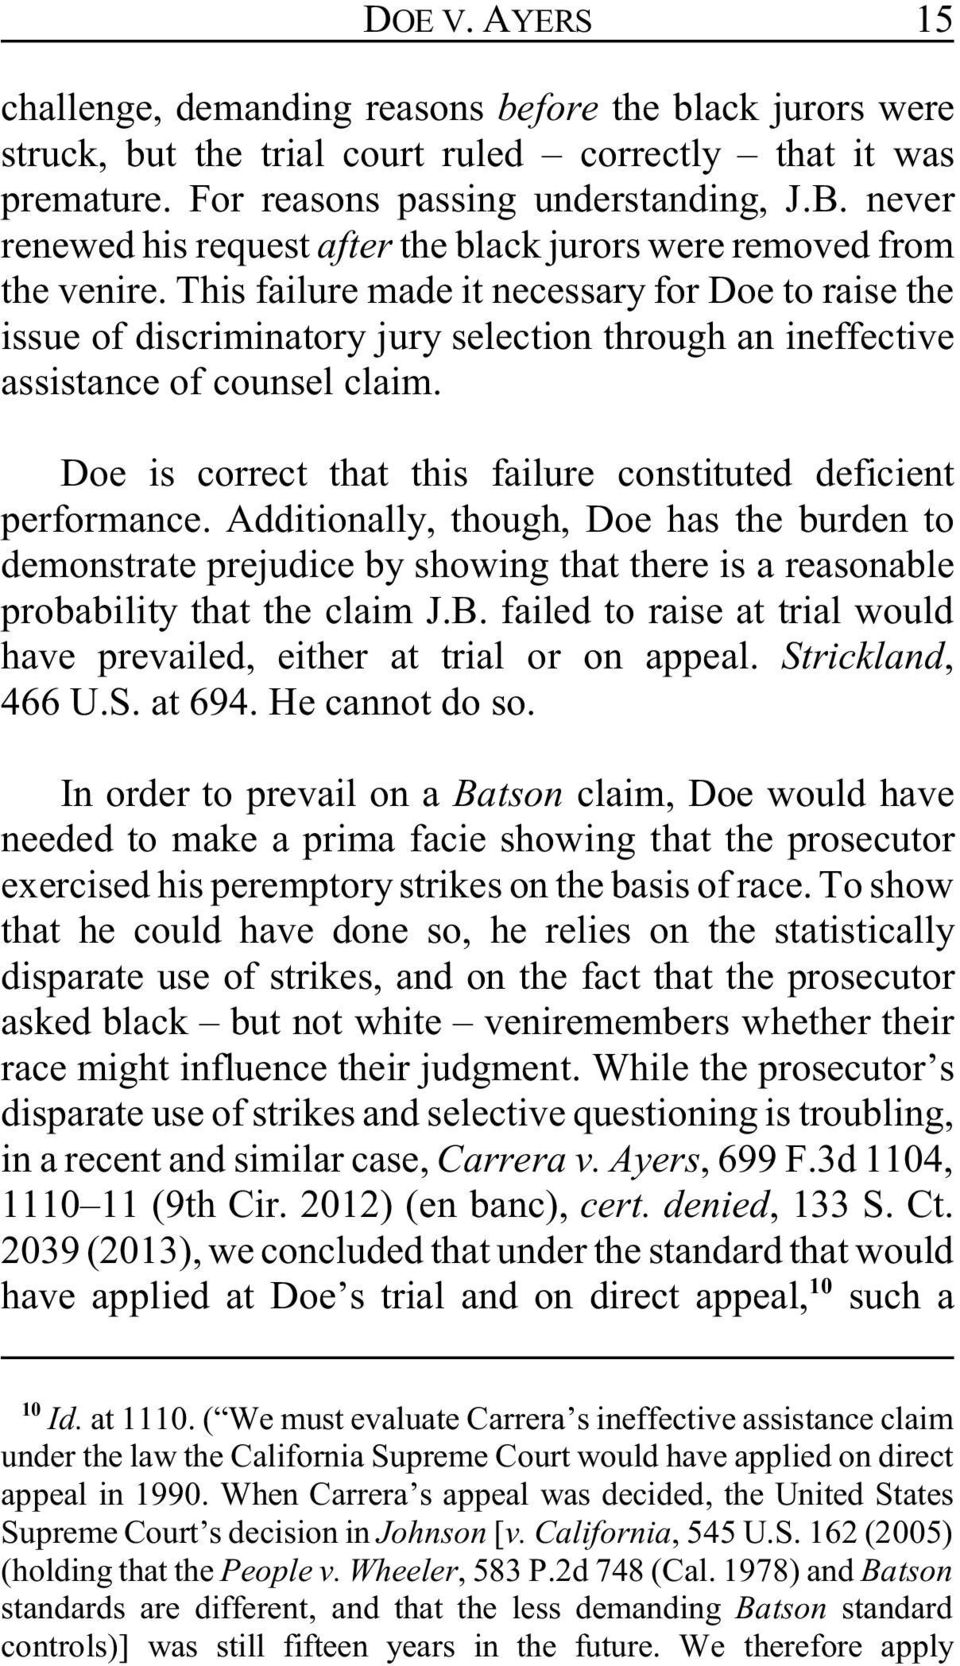 This failure made it necessary for Doe to raise the issue of discriminatory jury selection through an ineffective assistance of counsel claim.